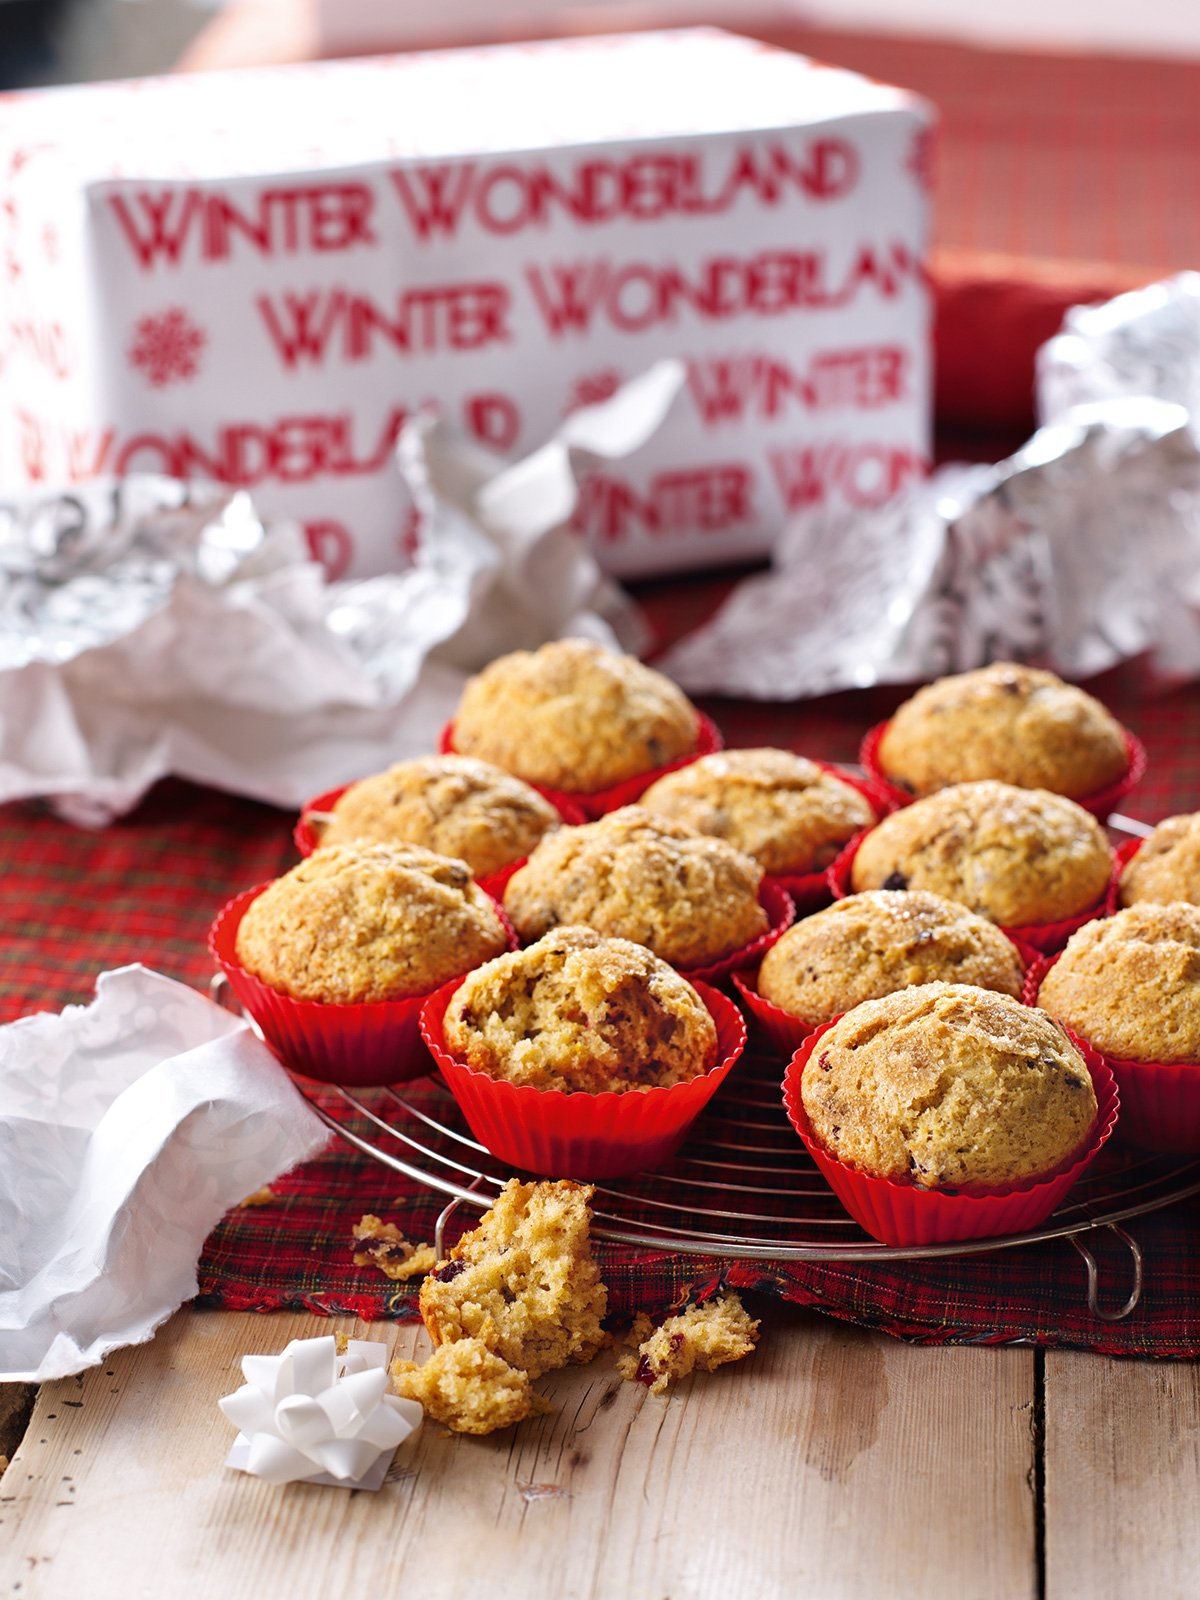 Apr 23, · Nigella Lawson's Chocolate Banana Muffins Recipe Notes These muffins are really easy to make with just a handful of common pantry staples. Delicious still warm from the oven, these muffins will keep for 2 or 3 days in an airtight container in a cool place, if they last that long/5(5).